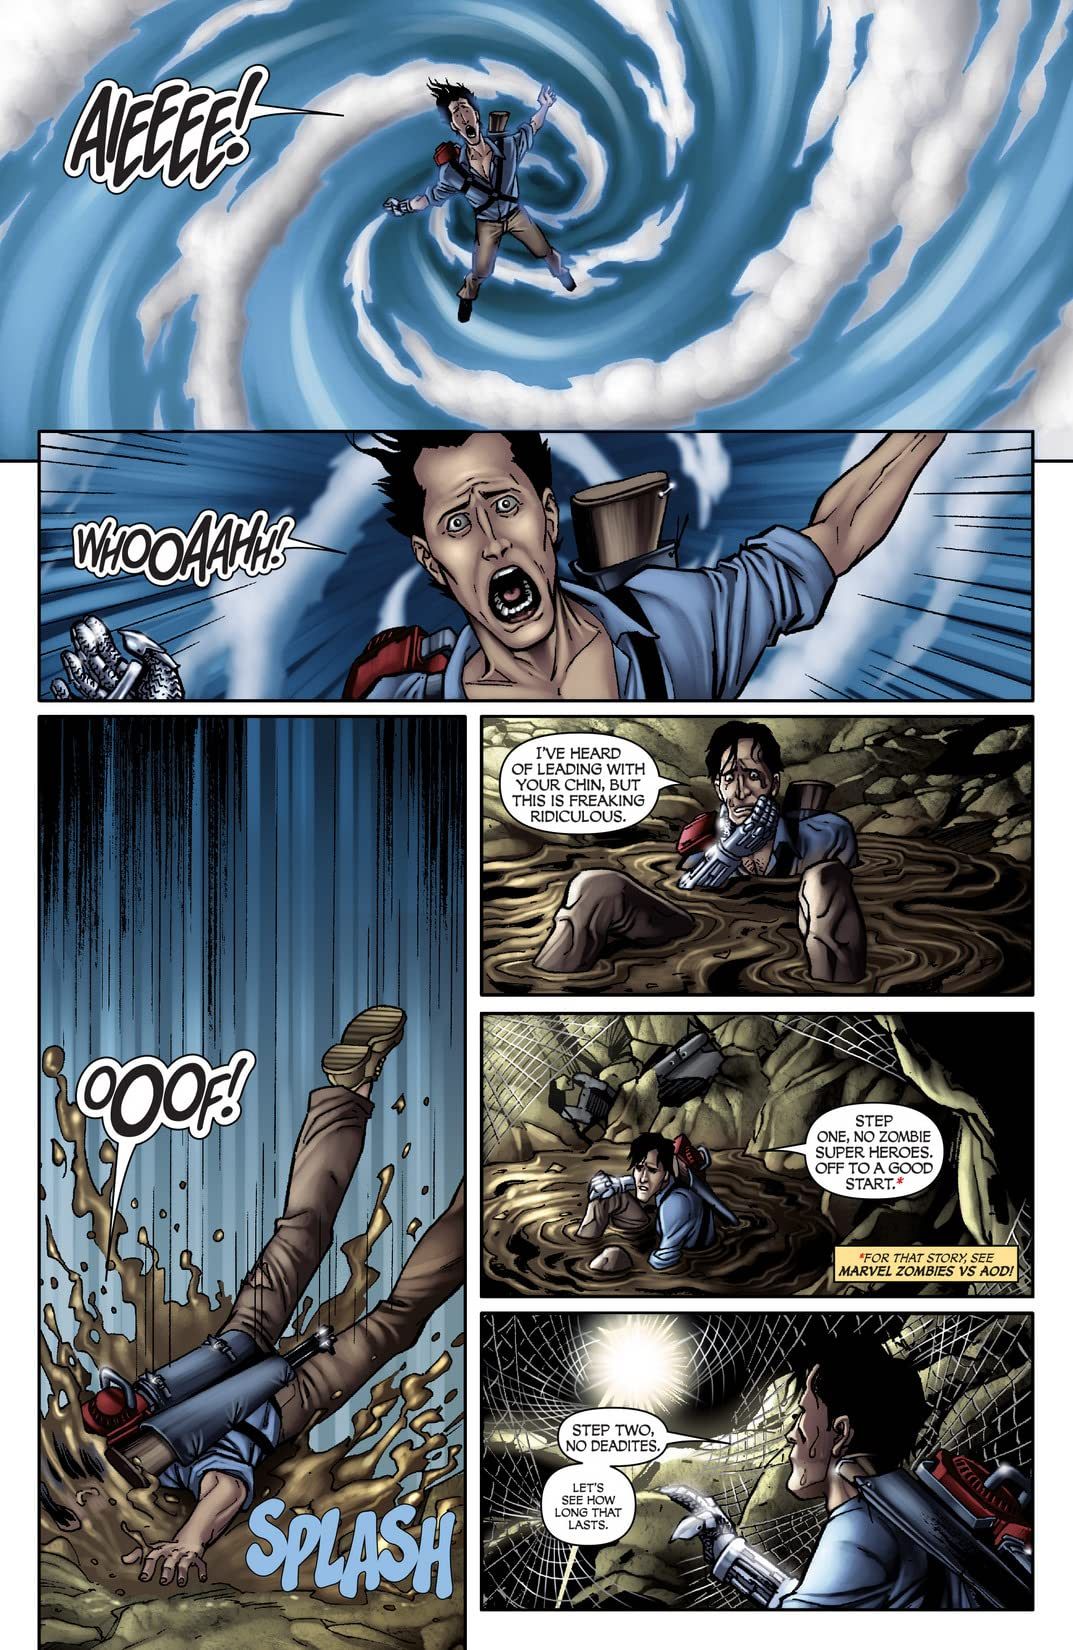 Army of Darkness Vol. 2 #1